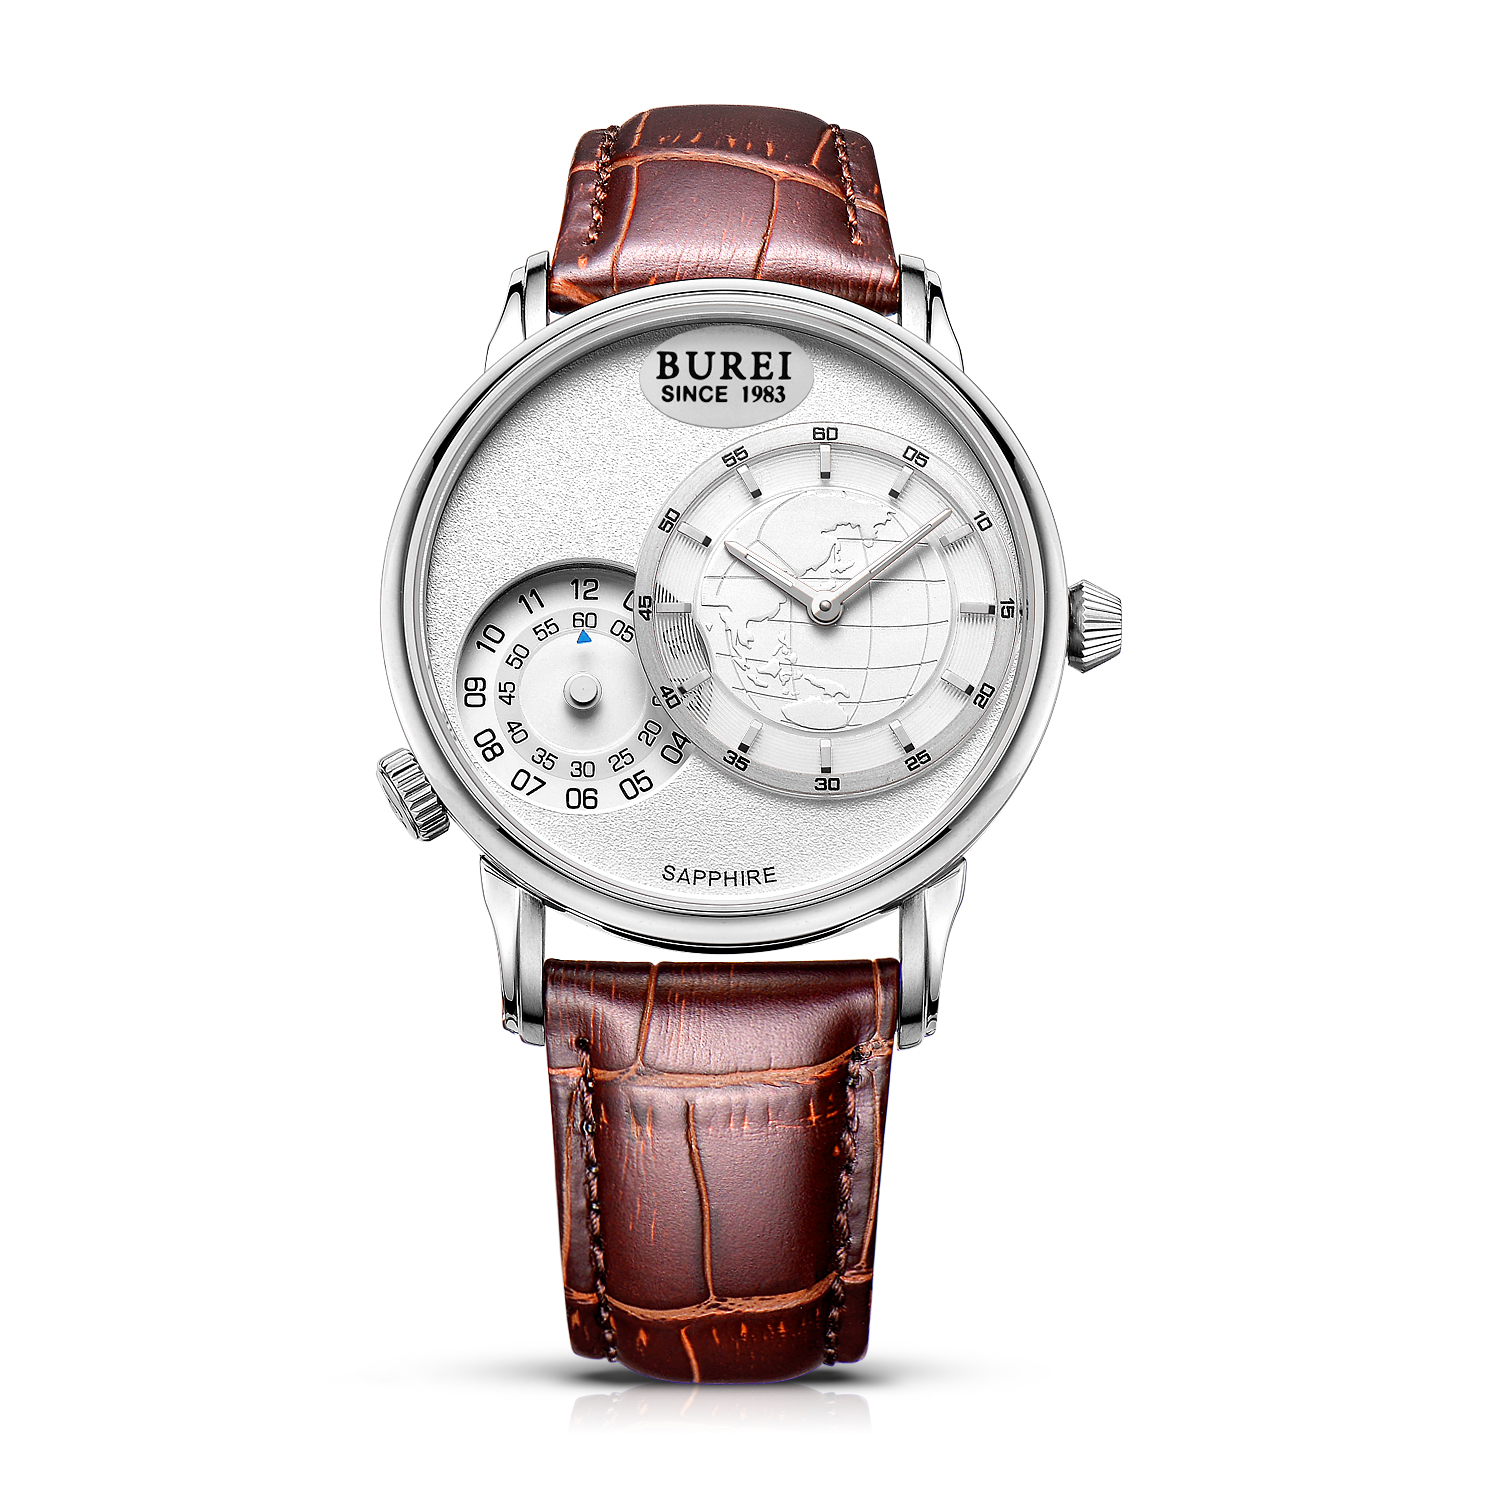 BUREI 5009 Switzerland watches men luxury brand Men's Dual Time Travel Business Casual Watches White Dial Brown Leather Strap(China (Mainland))